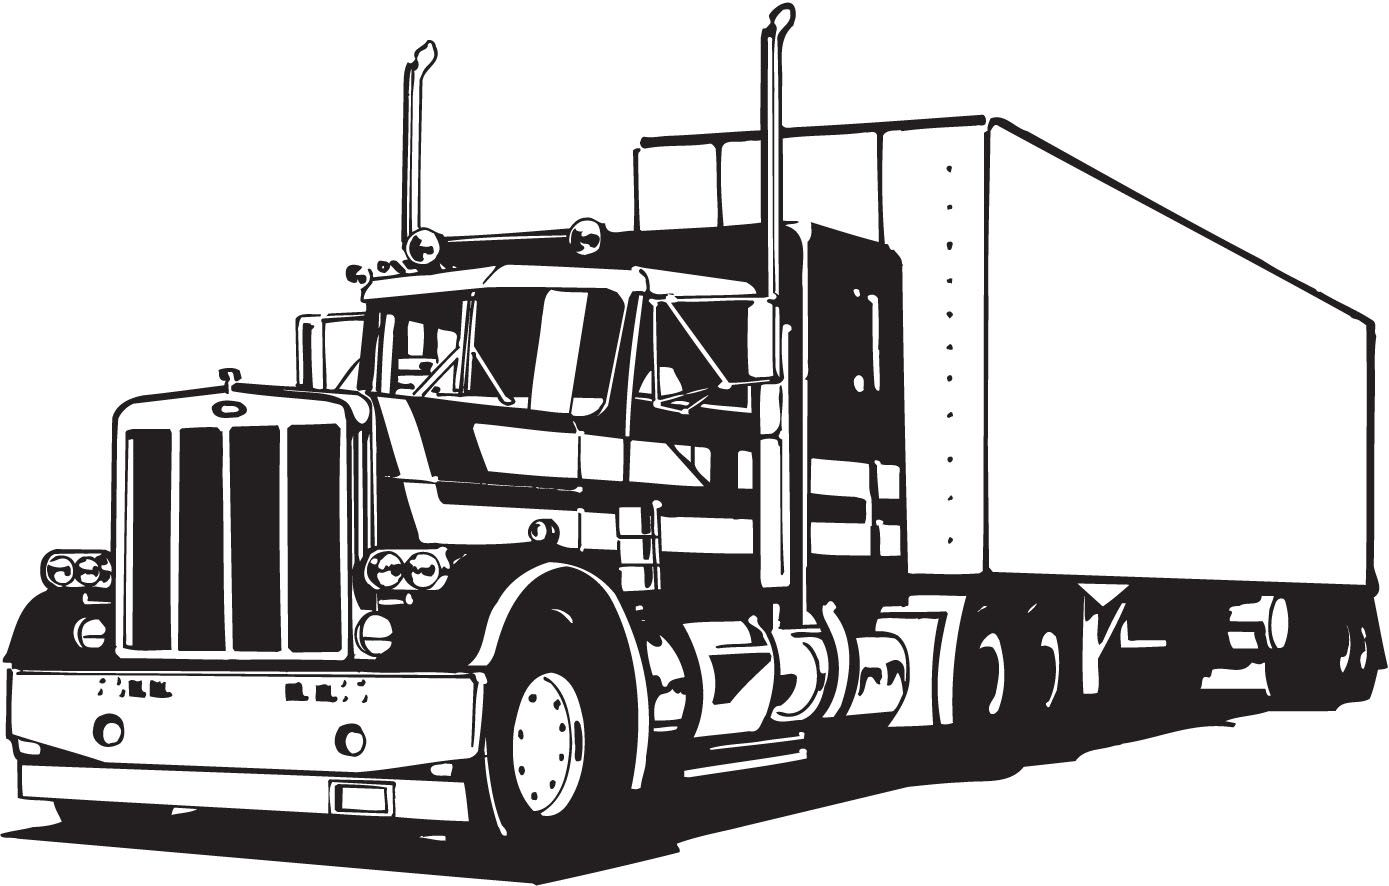 Truck Lineart Vectorfree Download Free Vector Cdr Eps Ai Truck Coloring Pages Semi Trucks Truck Design